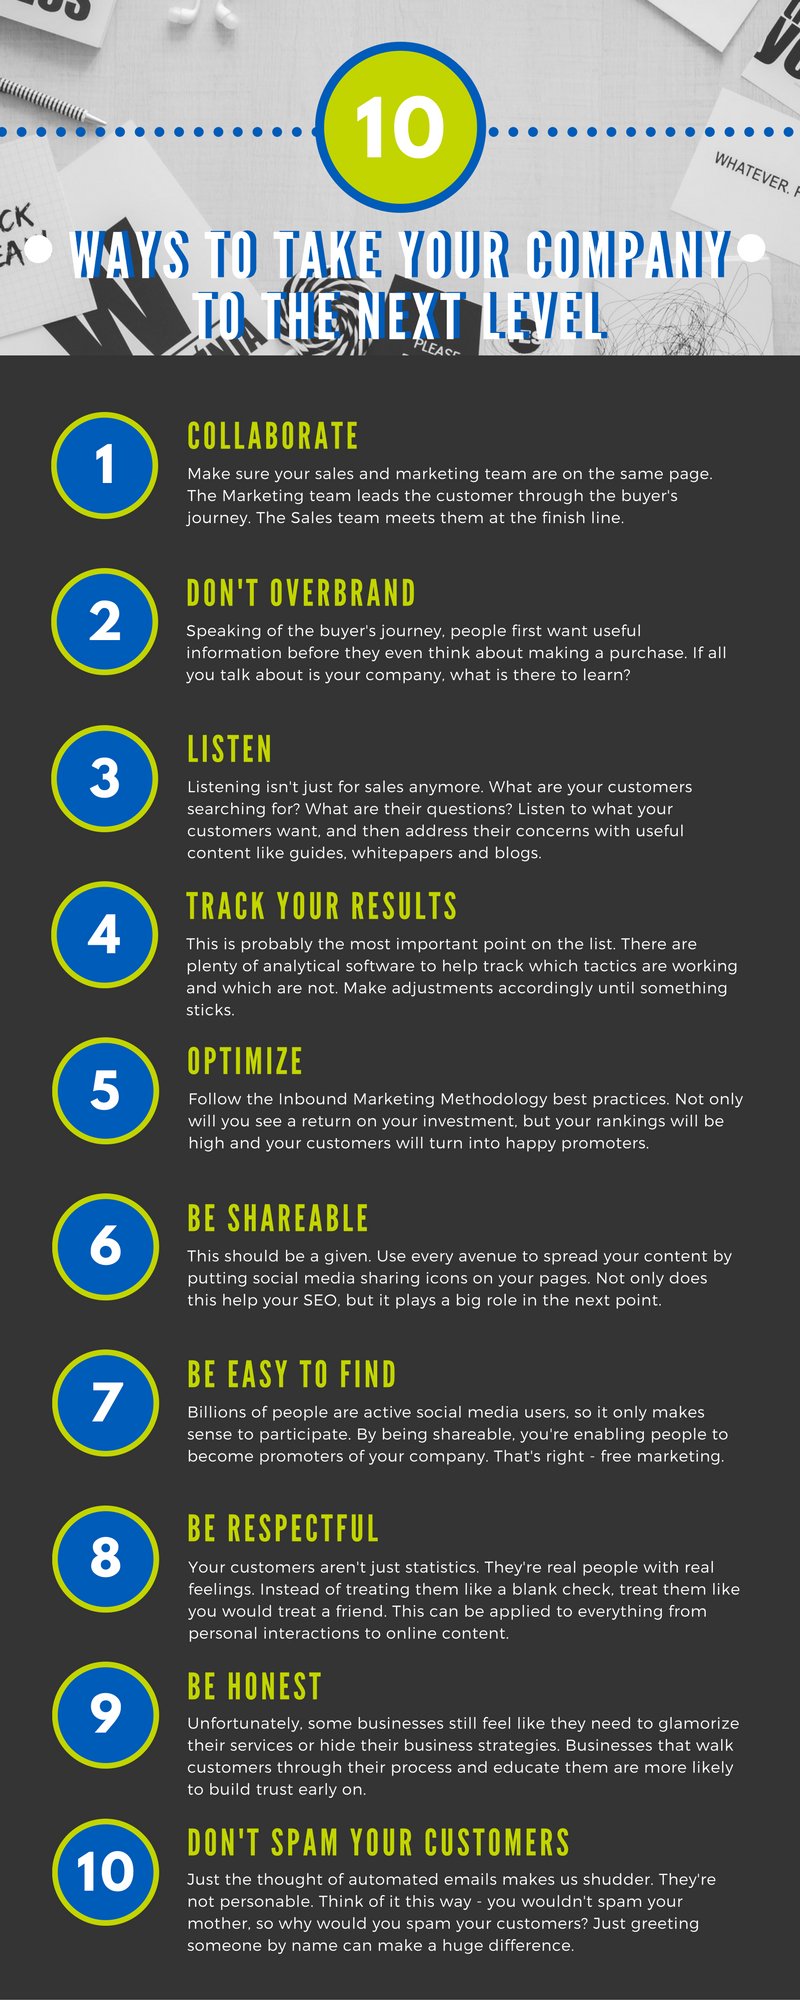 10 ways to take your company to the next level infographic